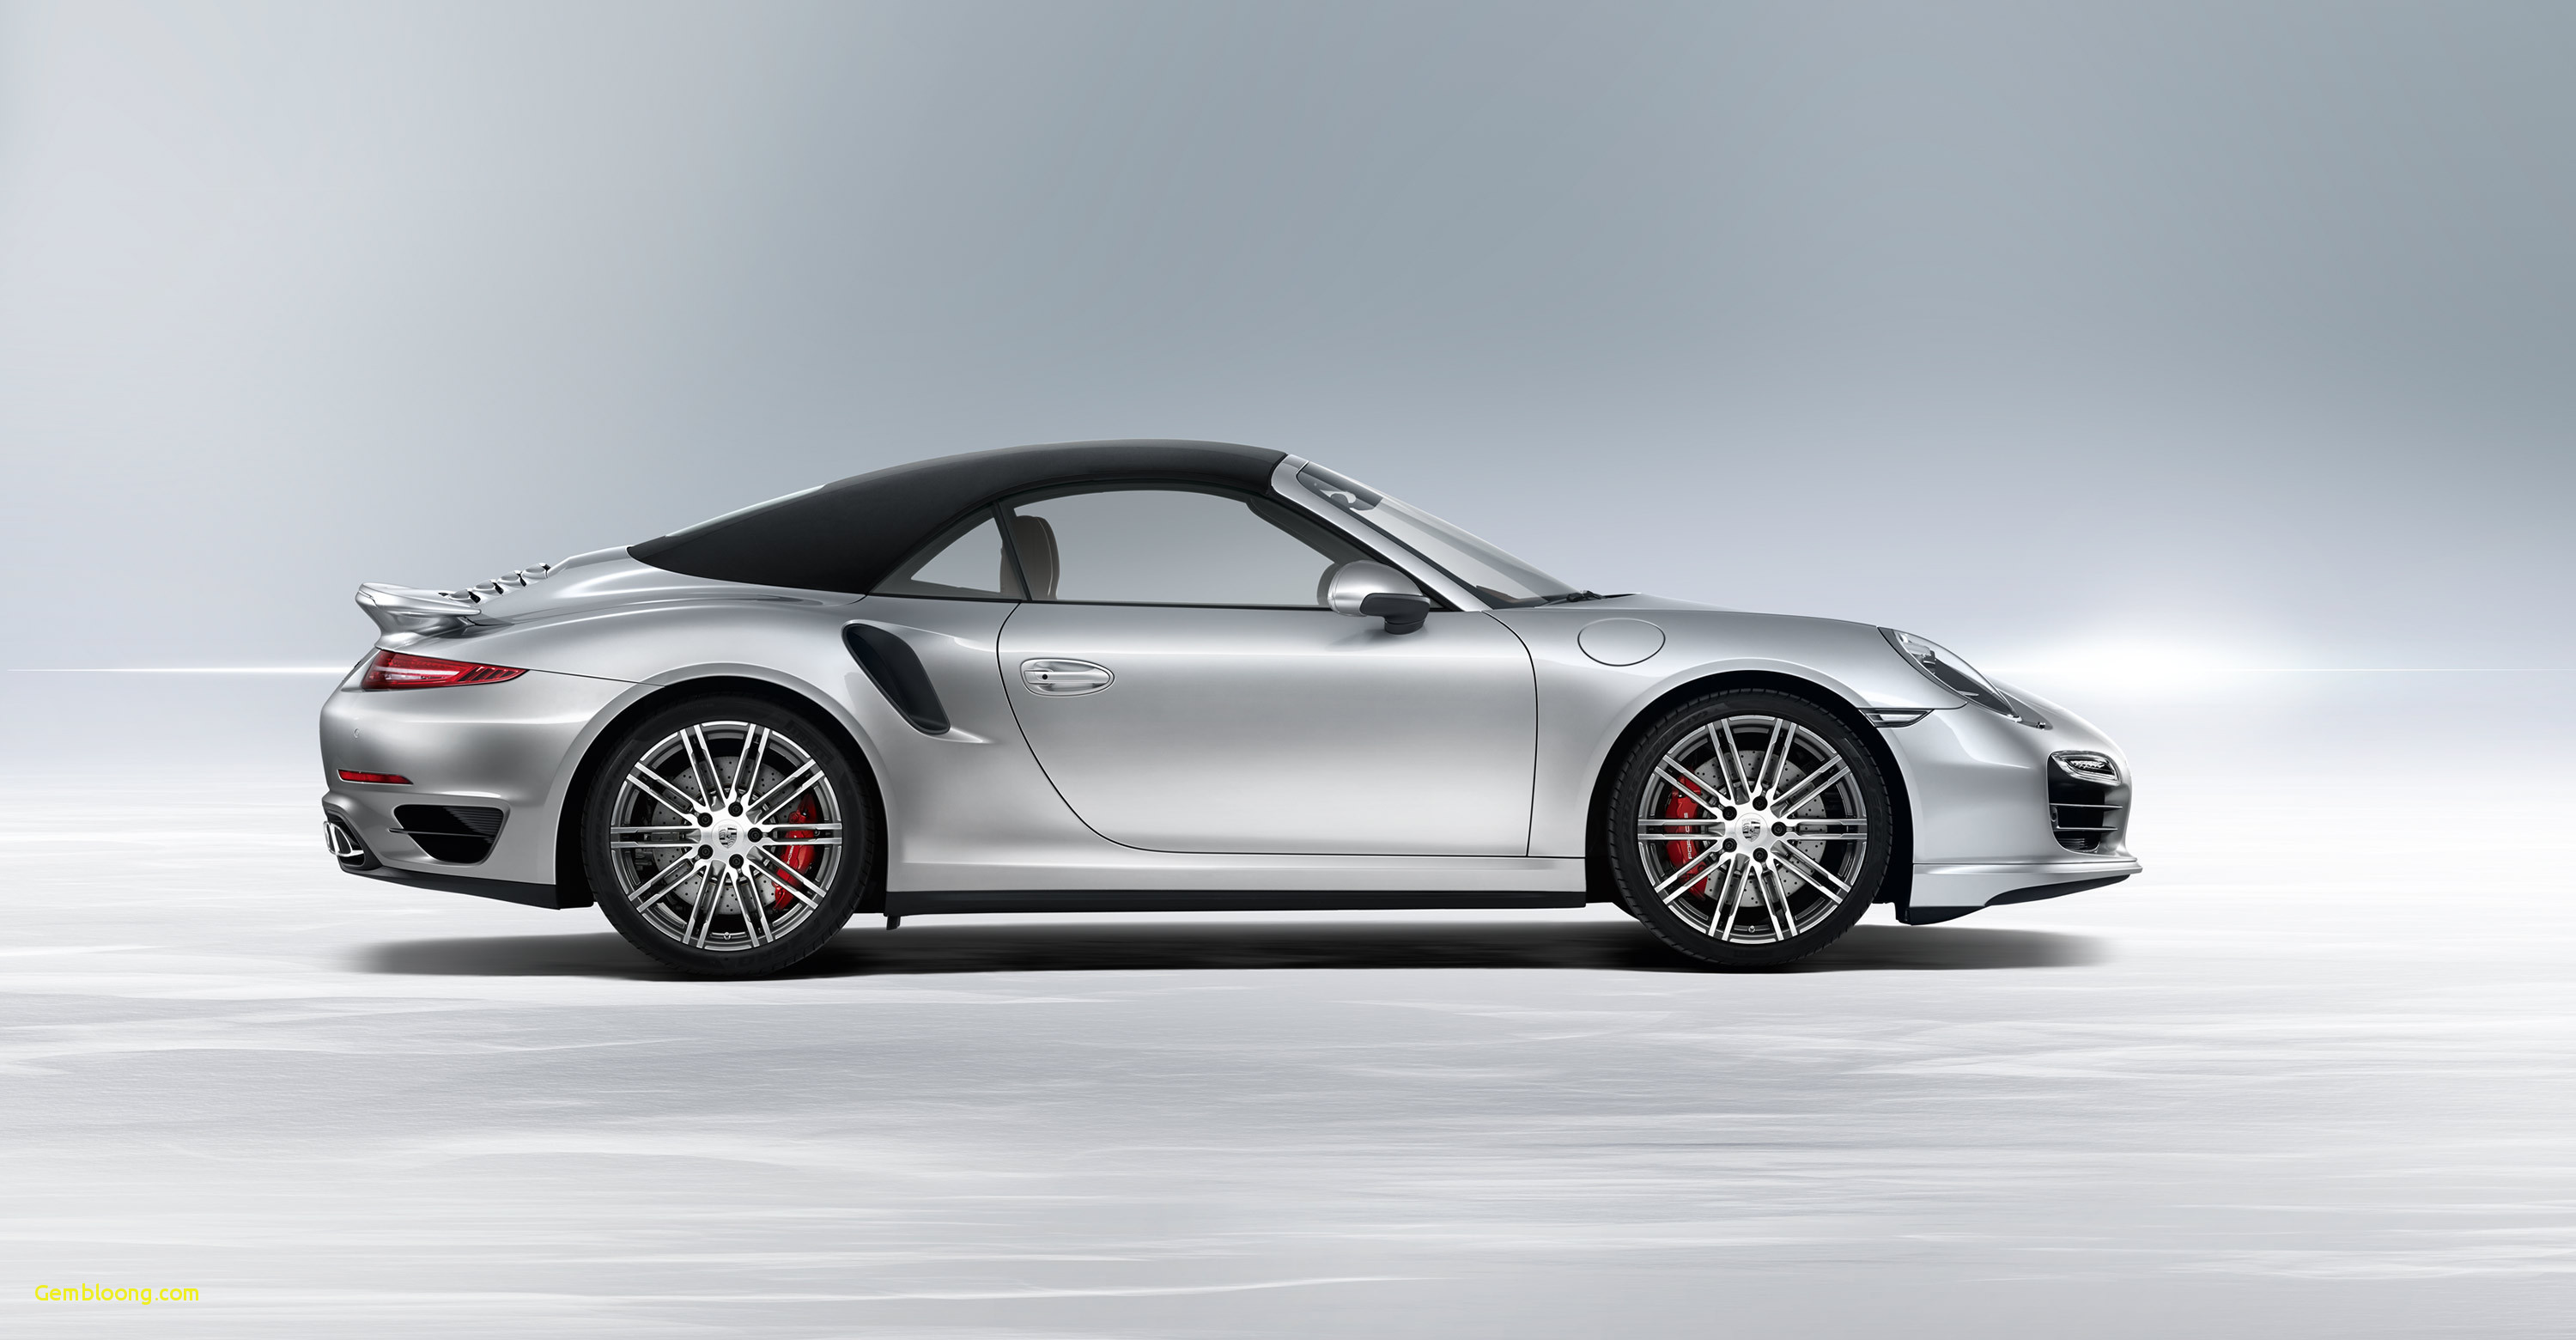 67 New 2020 Porsche Boxster Spyder Price Design and Review